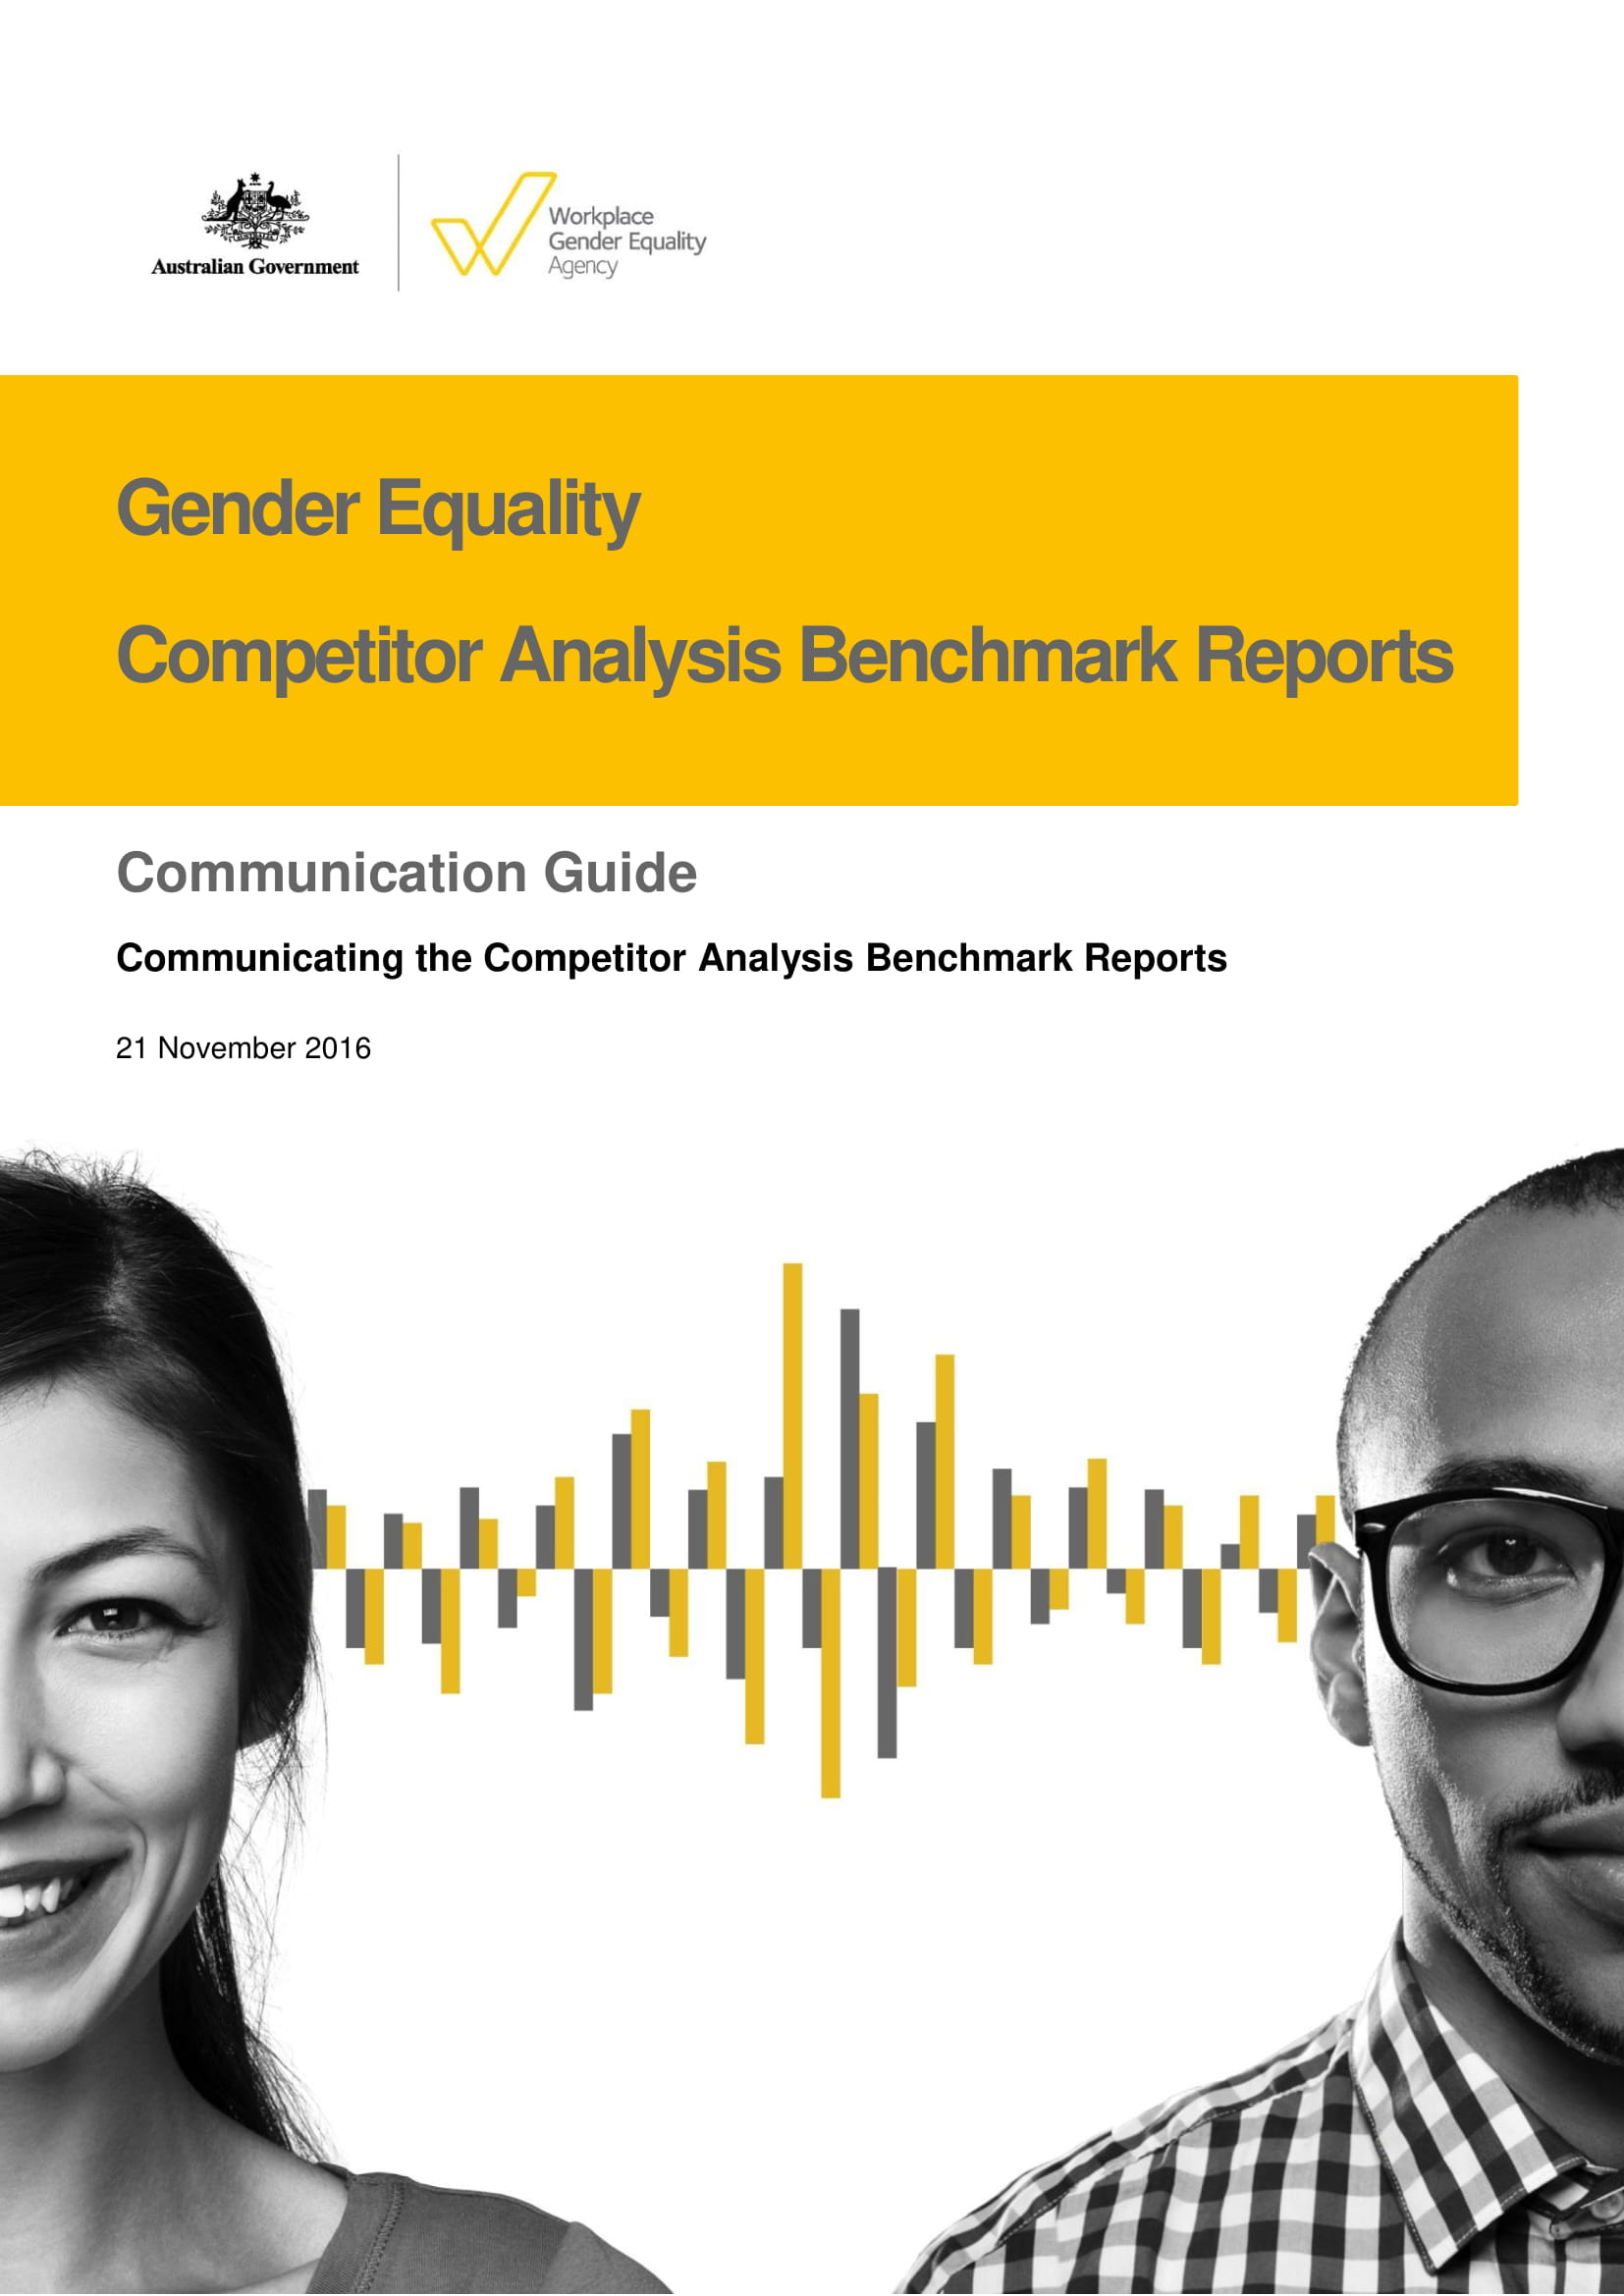 competitor analysis benchmark report example 01